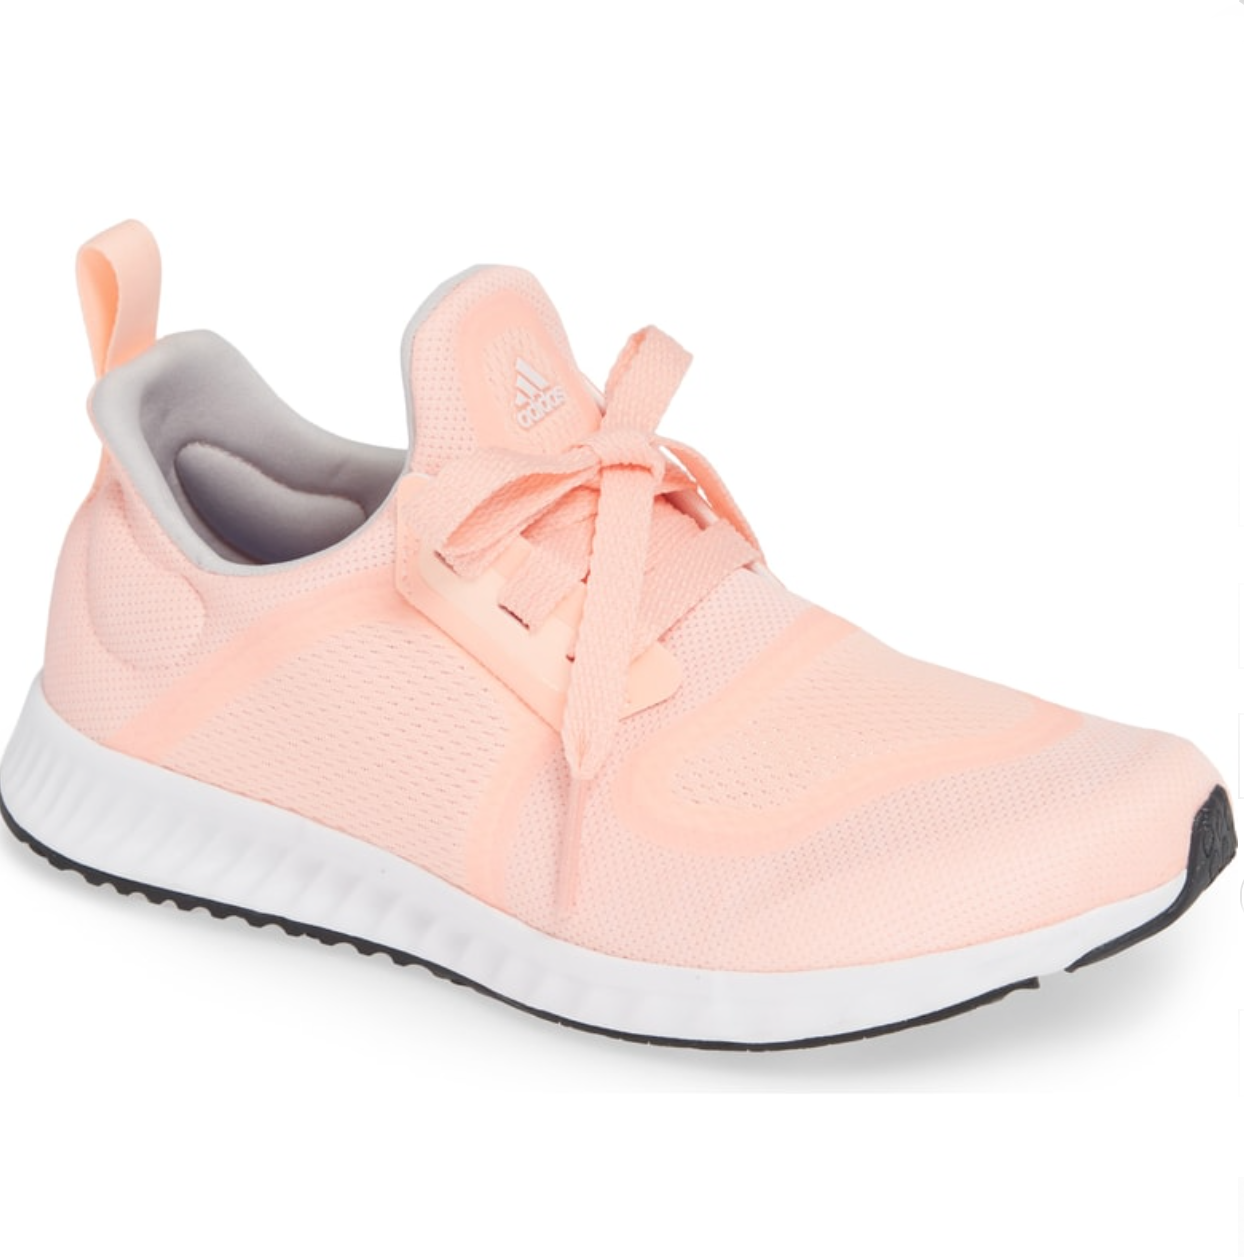 best pink runners | pink running shoes | affordable running shoes | running shoes for teenagers